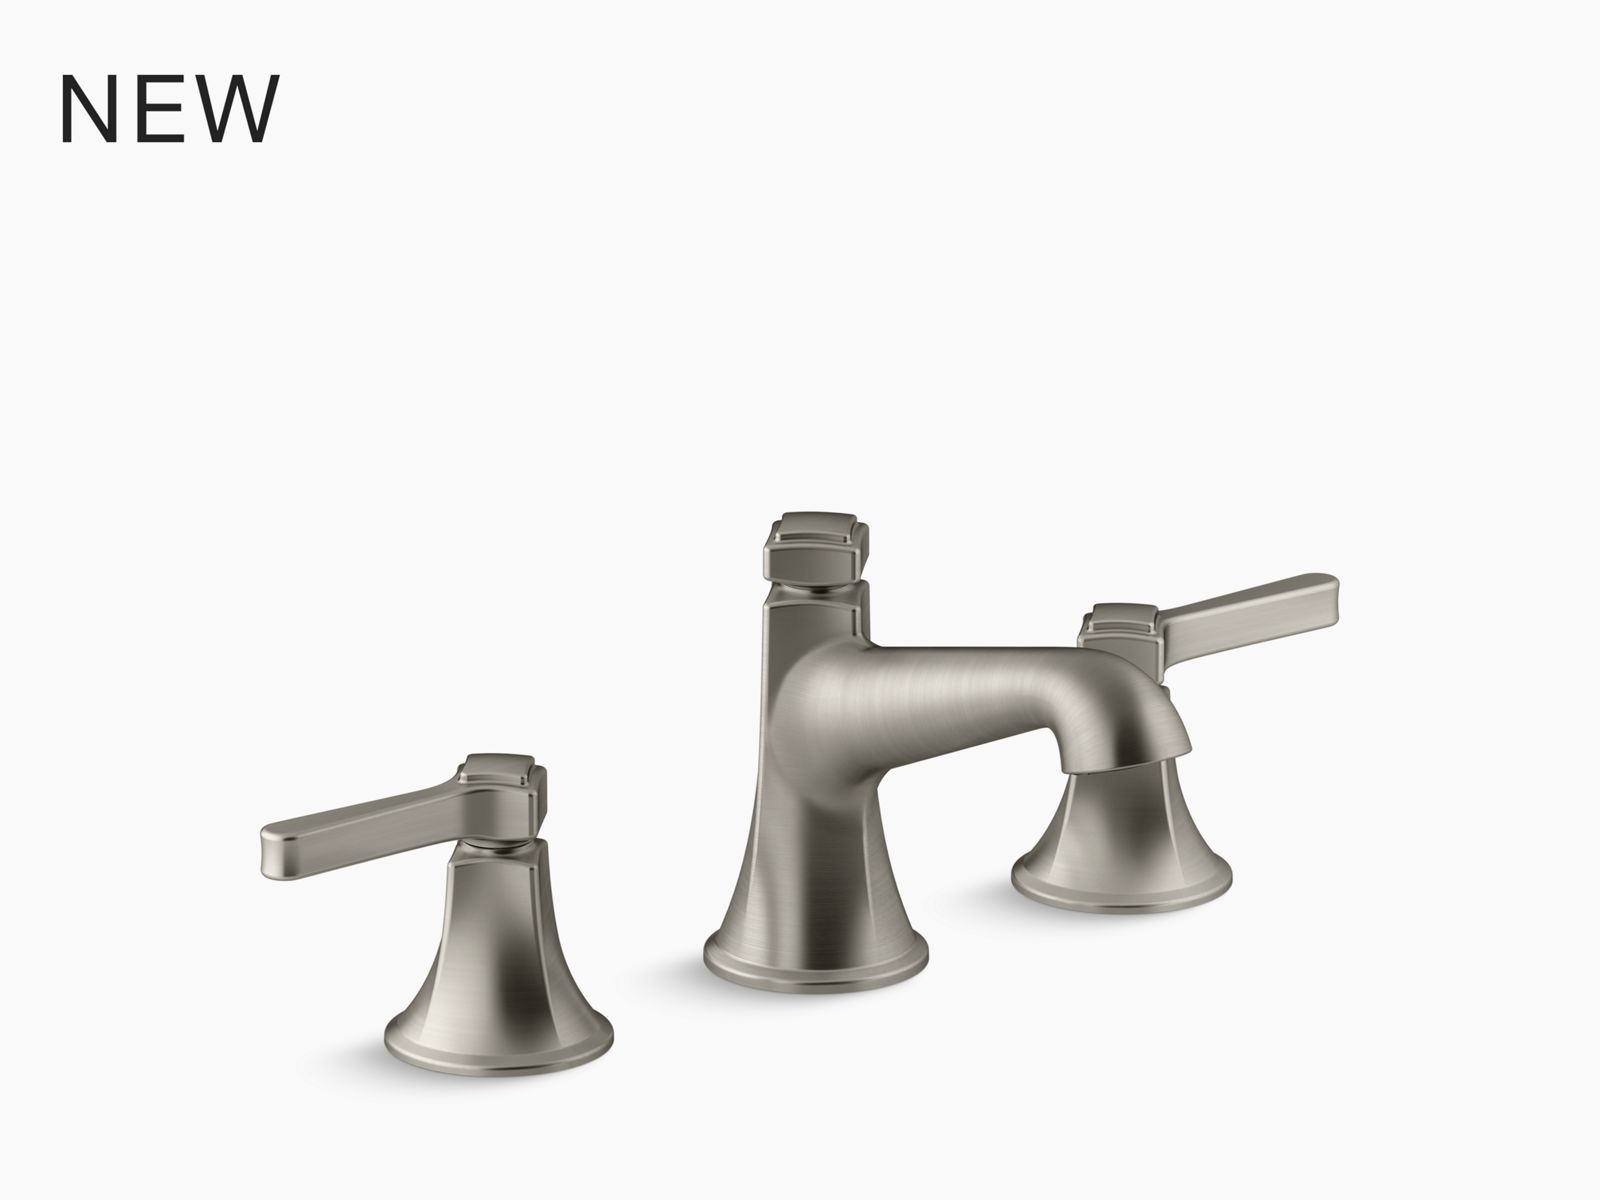 graze pull down kitchen sink faucet with three function sprayhead